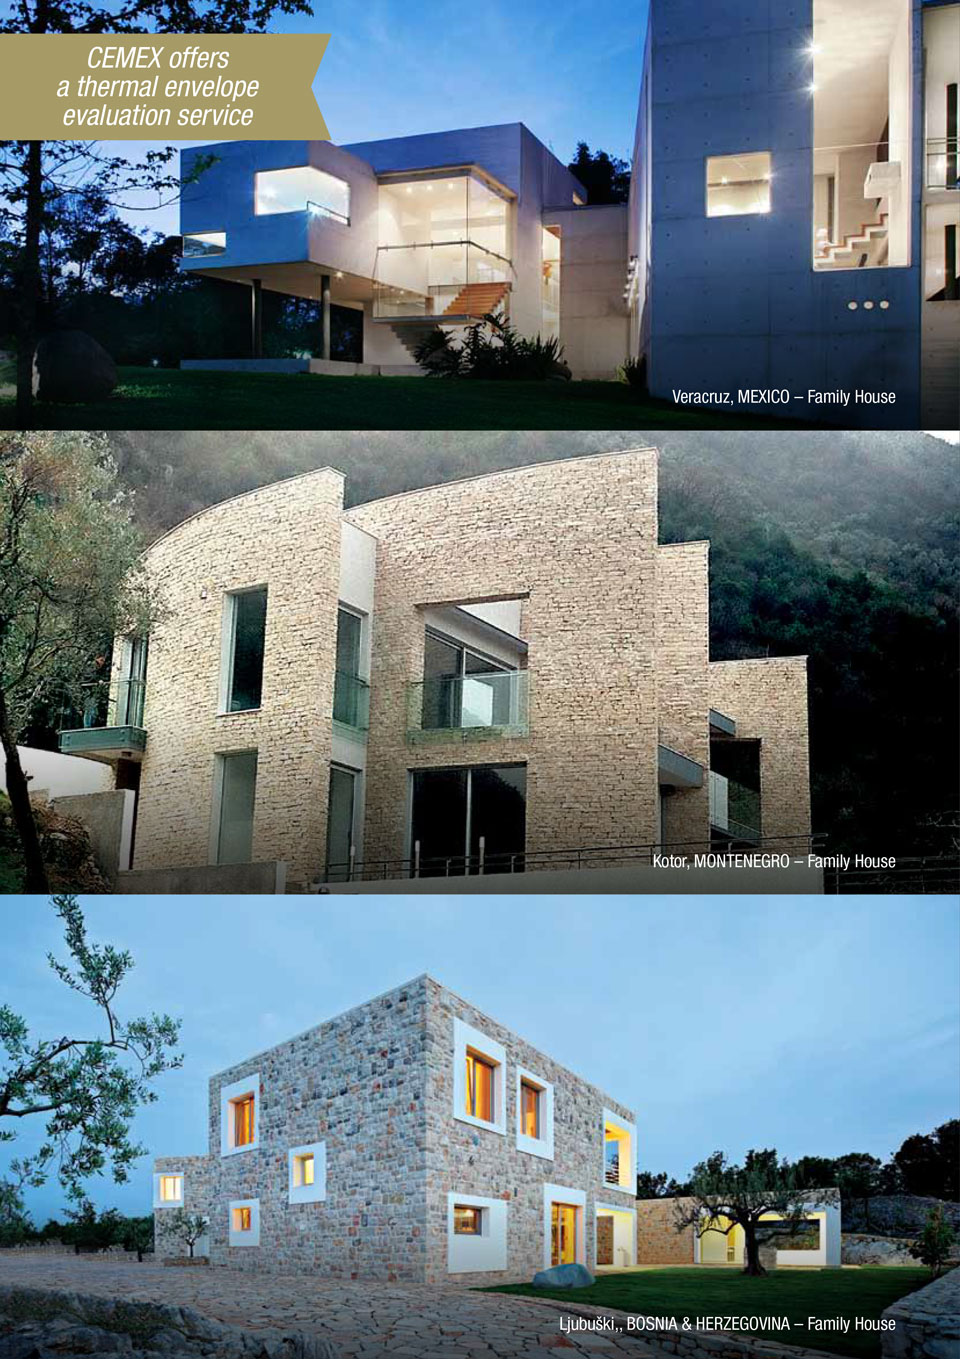 An image showing some of the projects CEMEX has done with the Energy Efficient Housing solution.